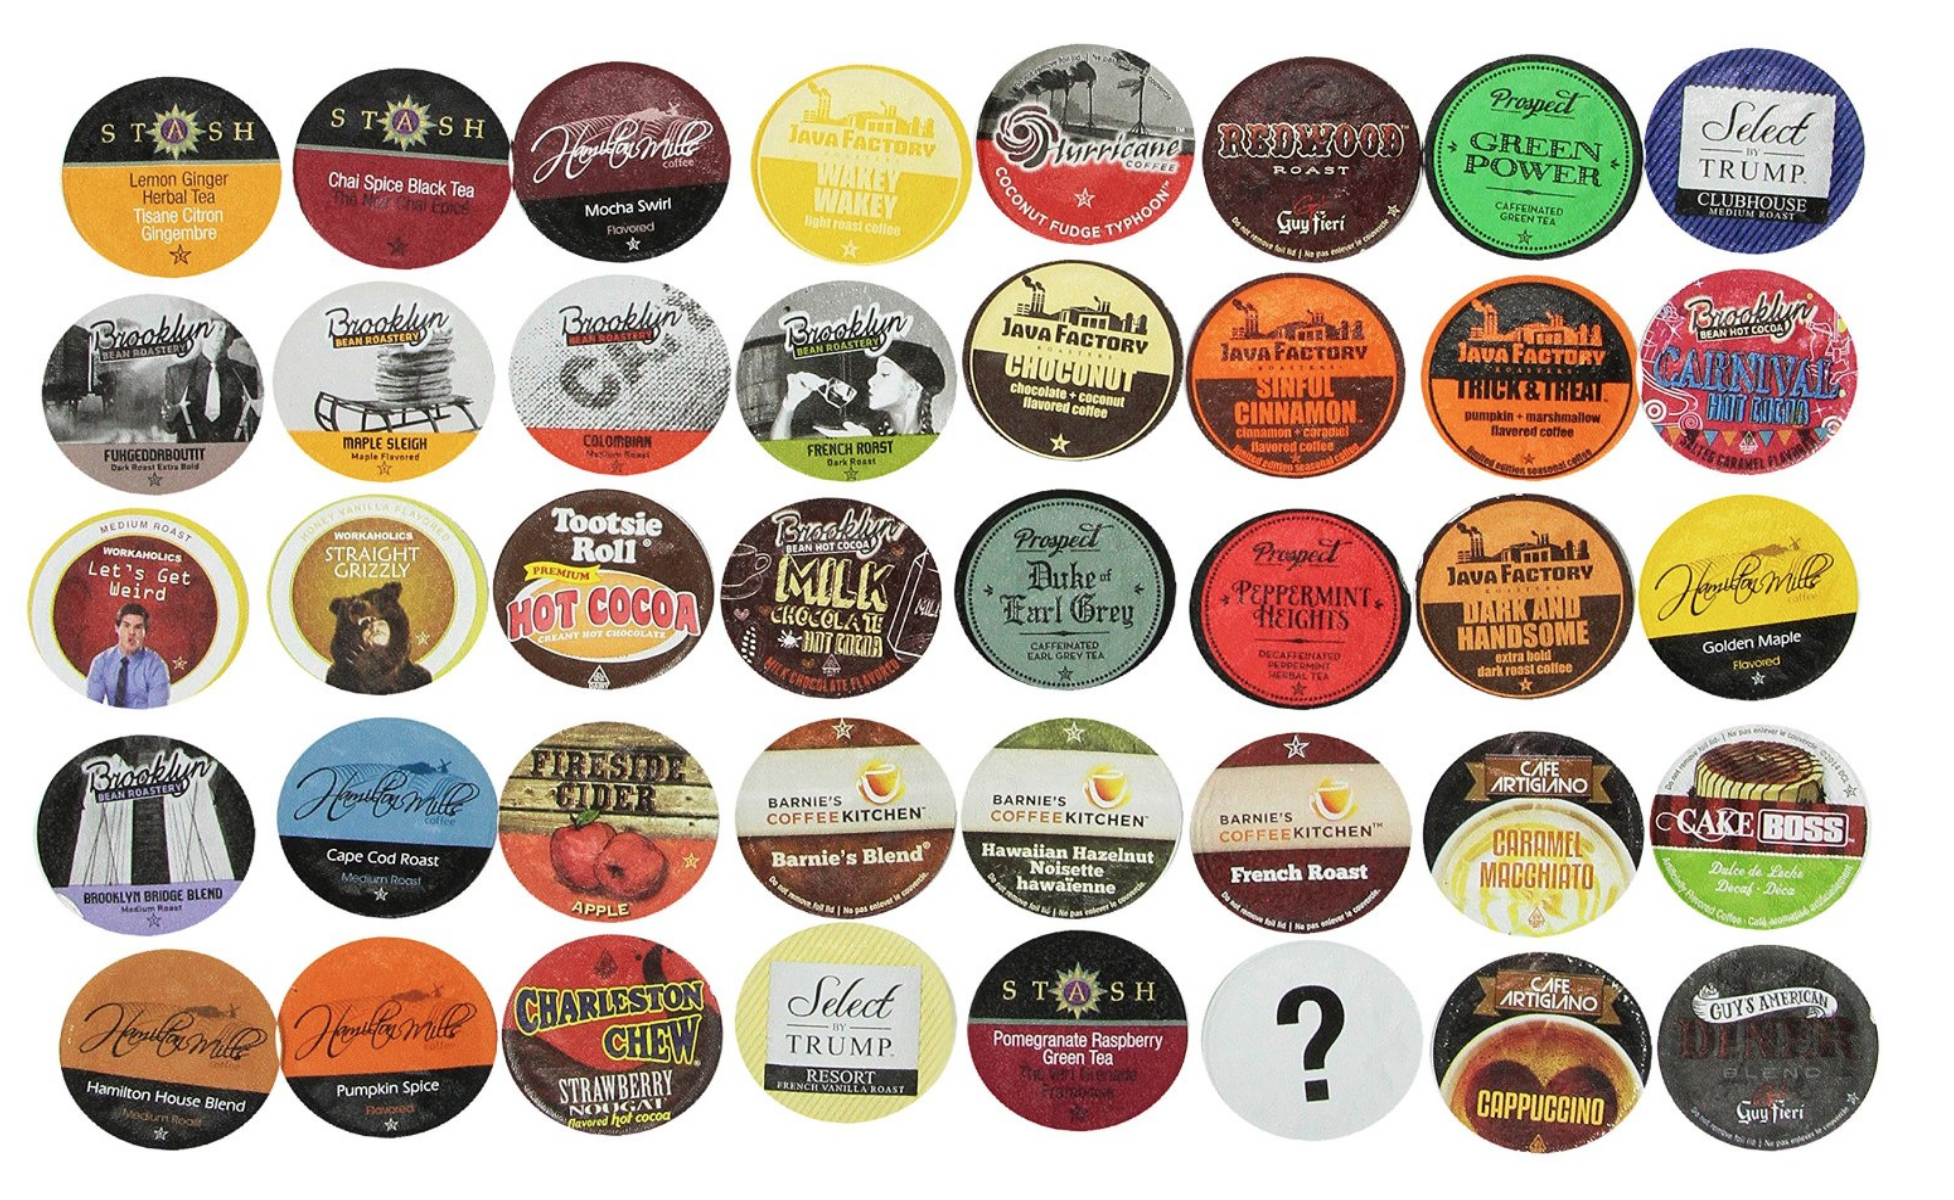 40 Ct. Two Rivers K-Cup Brewers Bit of Everything Sampler Pack Only $19.99 – Just 50¢ Per Cup!